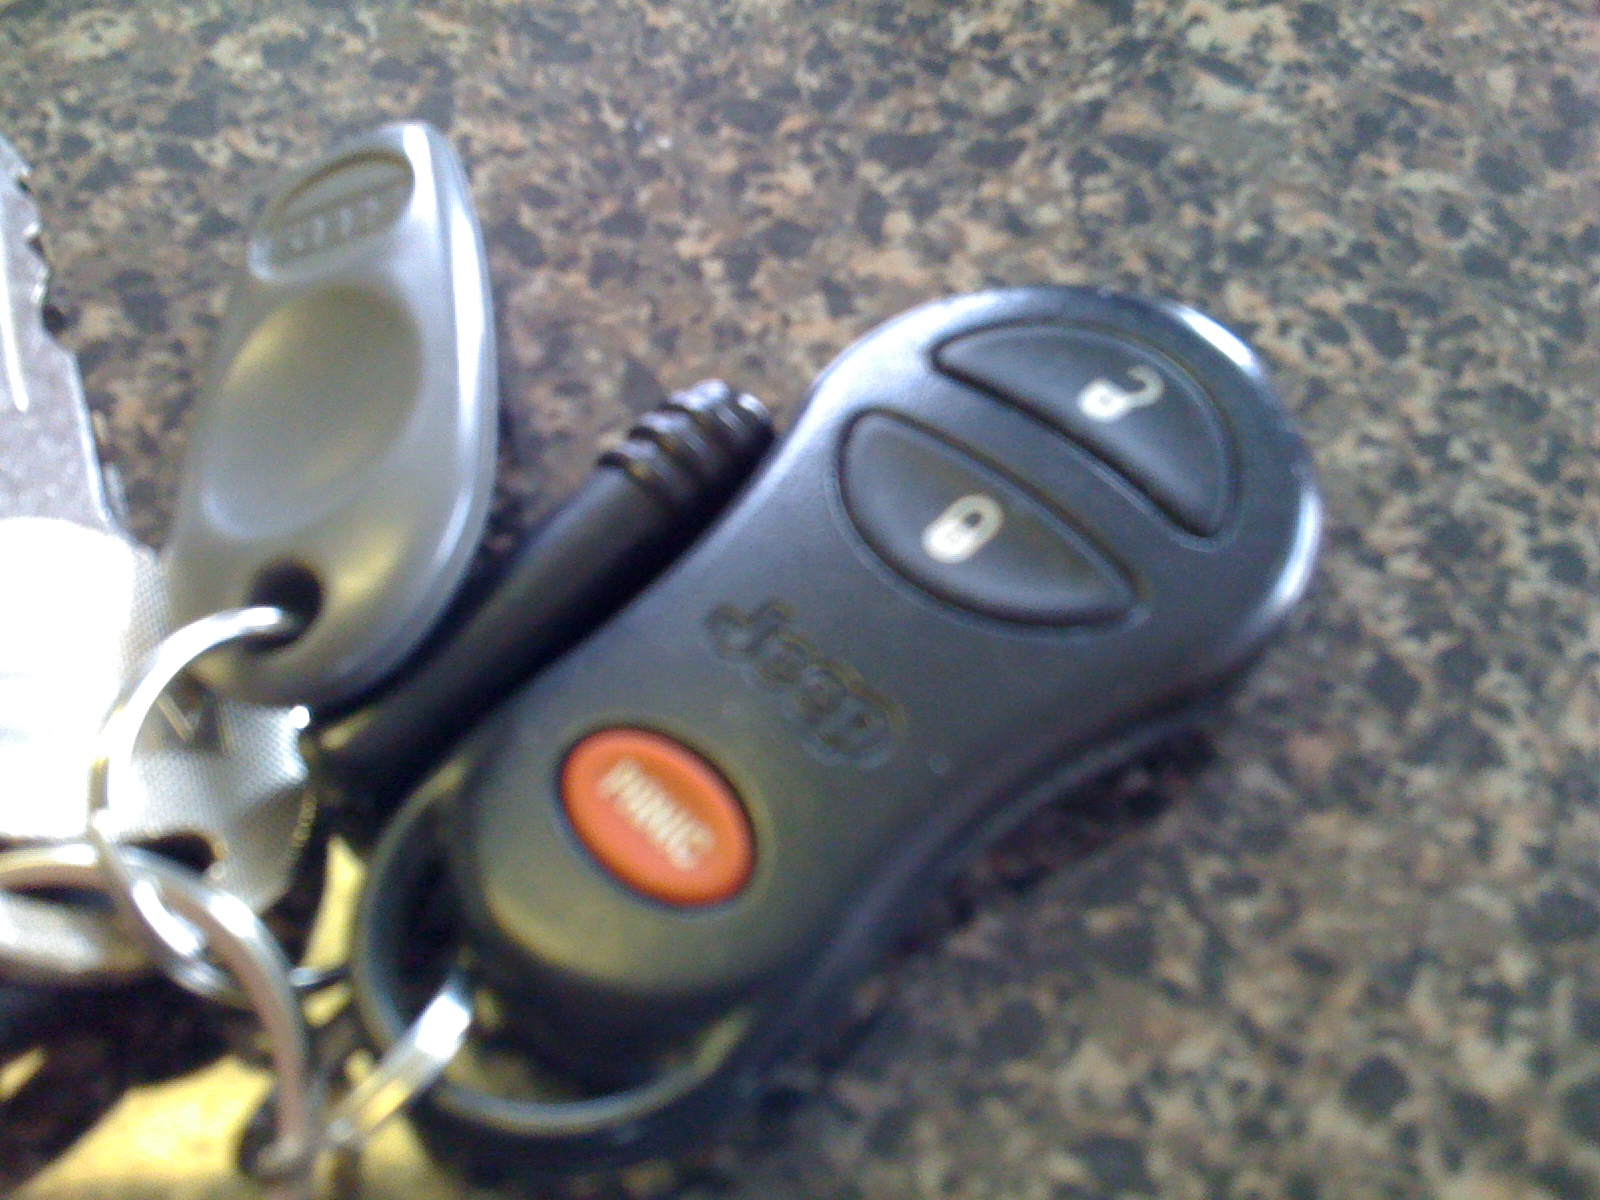 How to Disable Your Car's Panic Button